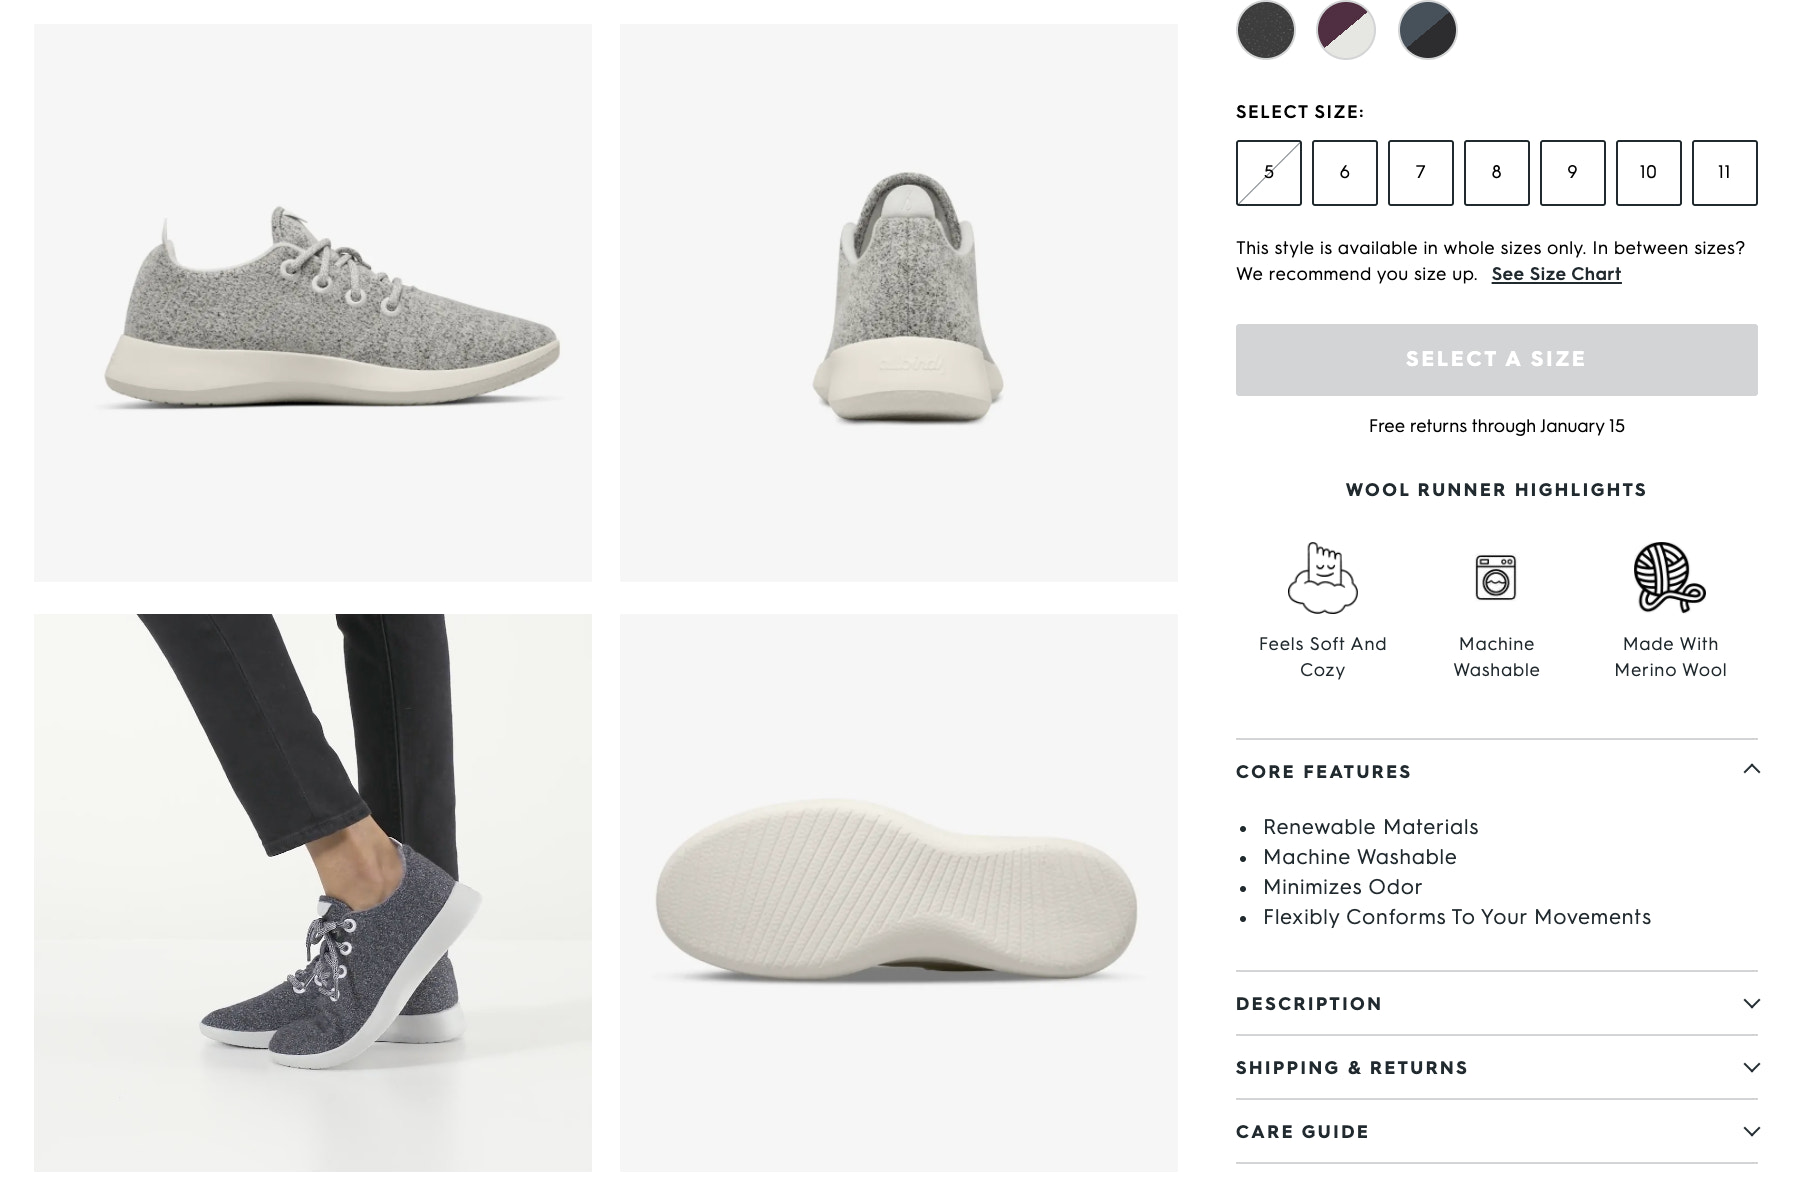 Details shared on the Allbirds product page for their wool runner